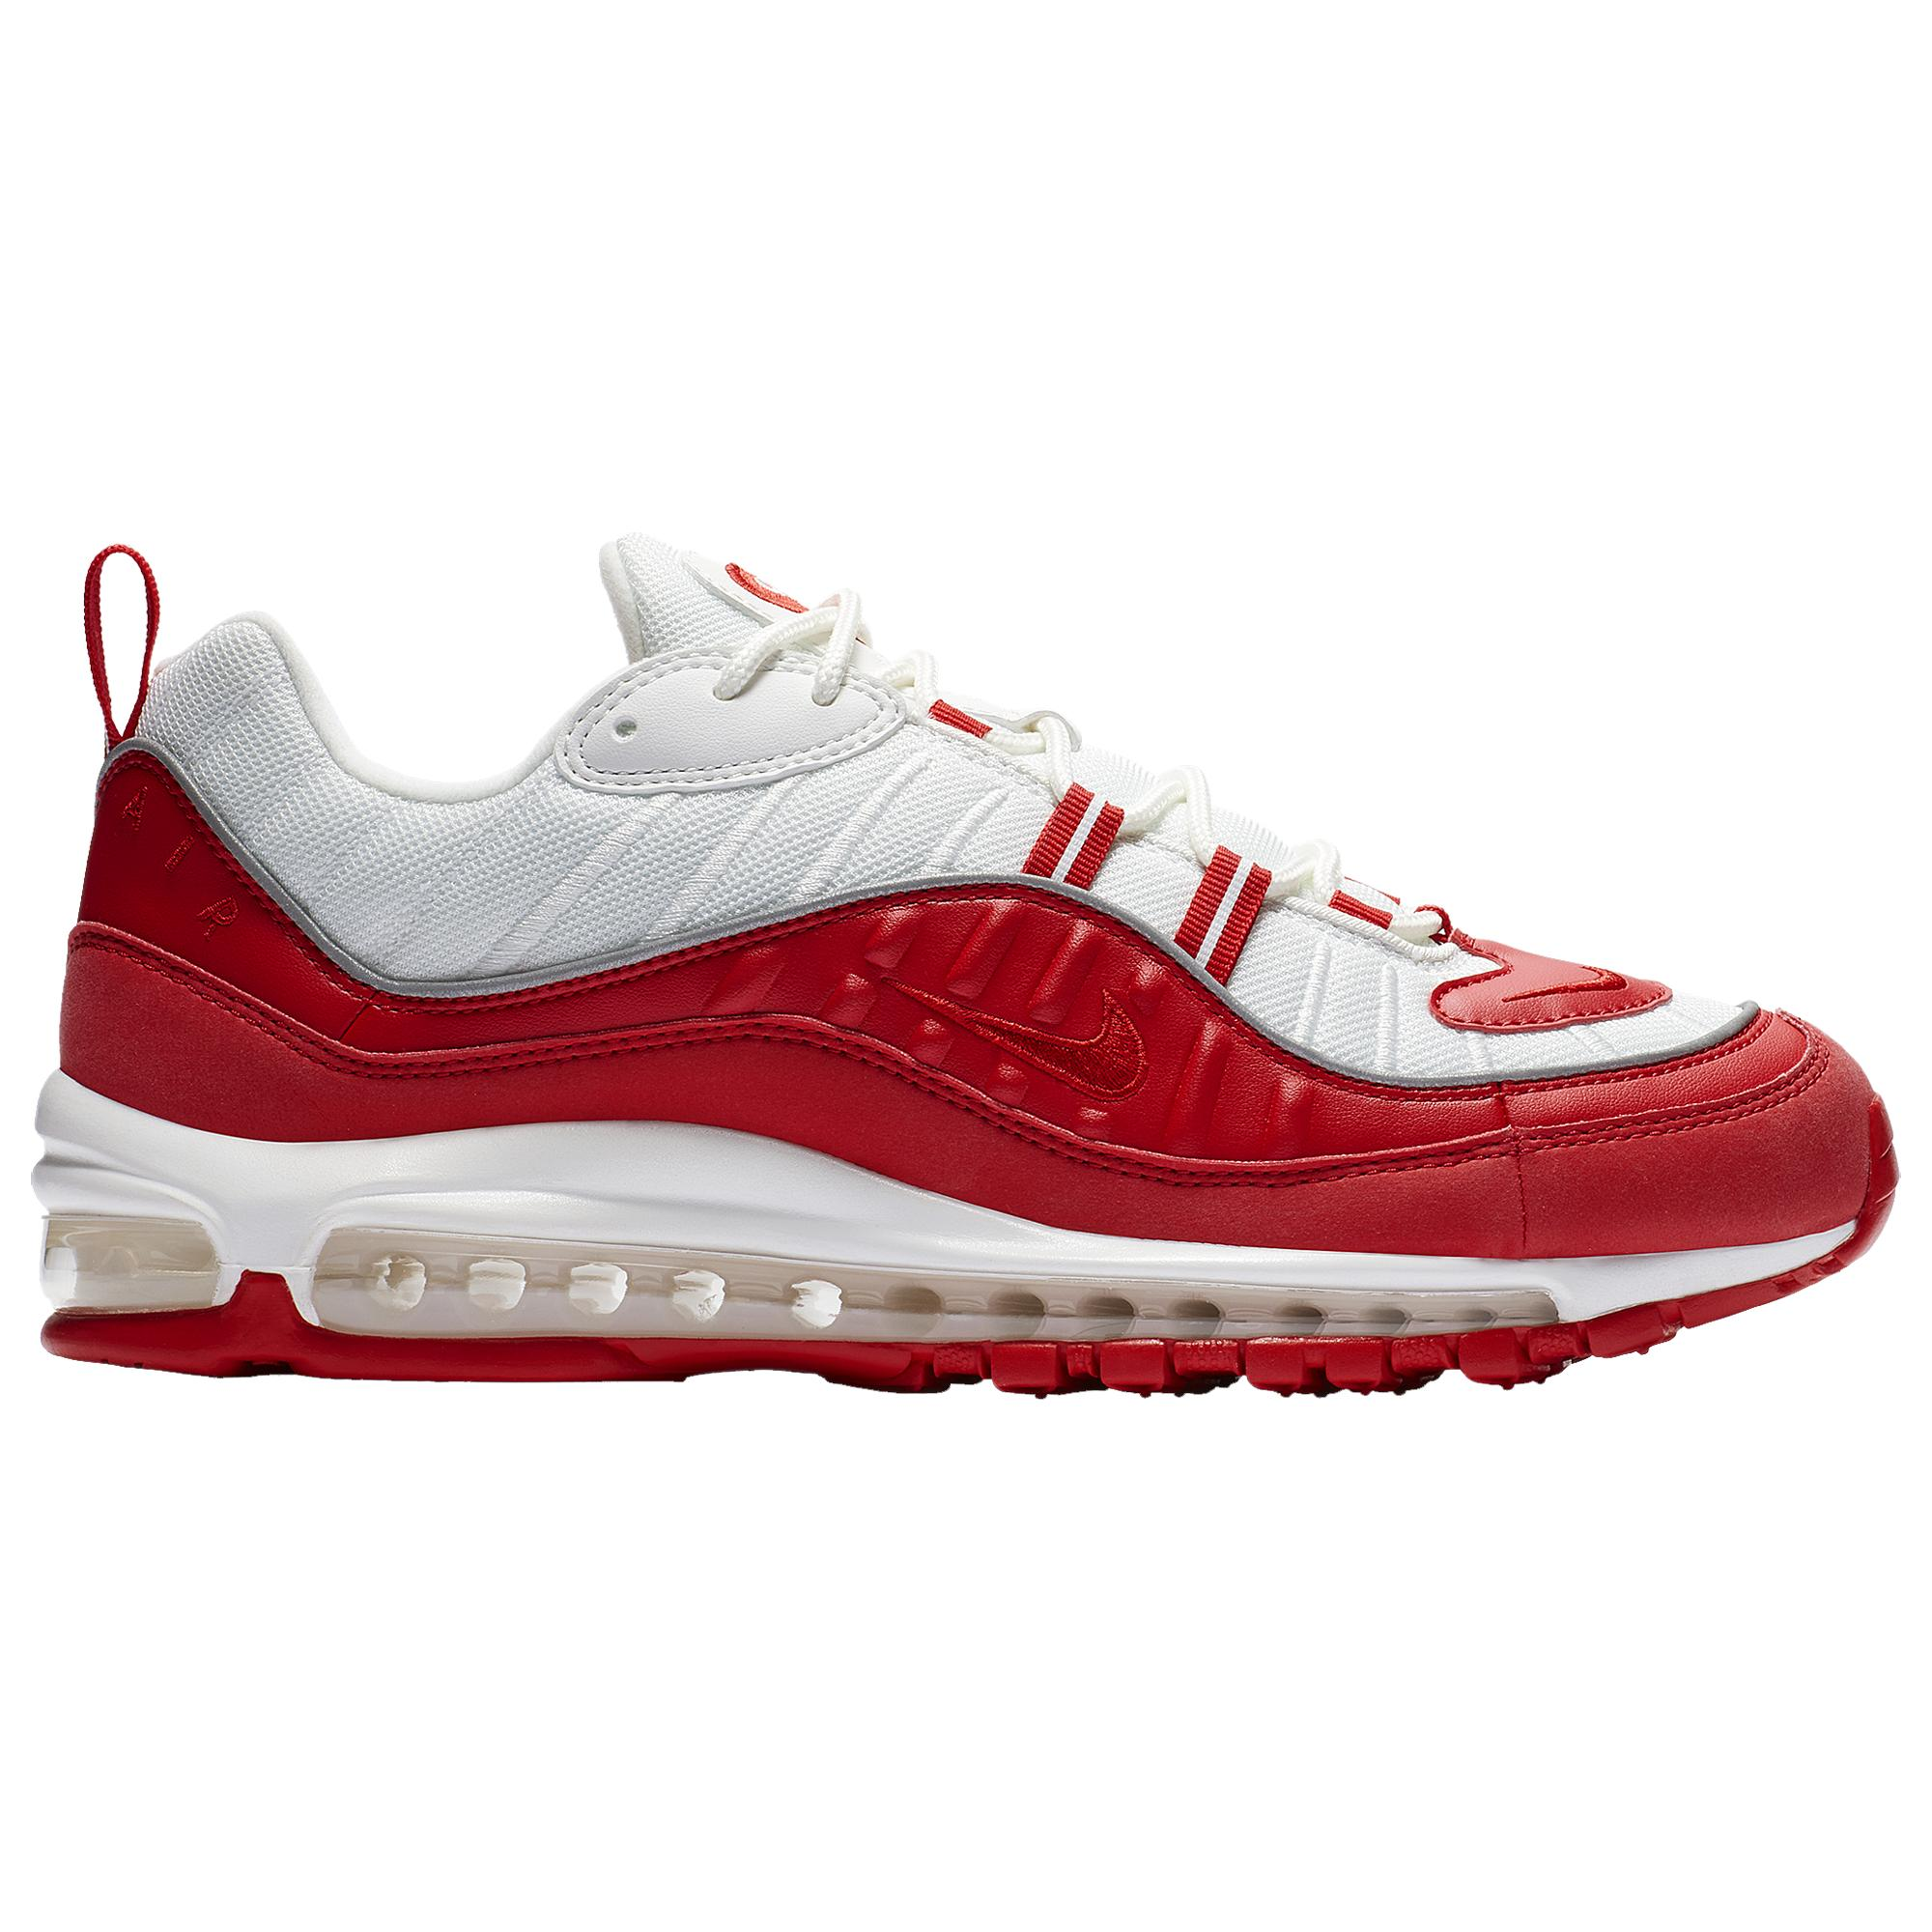 Nike Leather Air Max 98 Low-top sneakers in University Red (Red ...